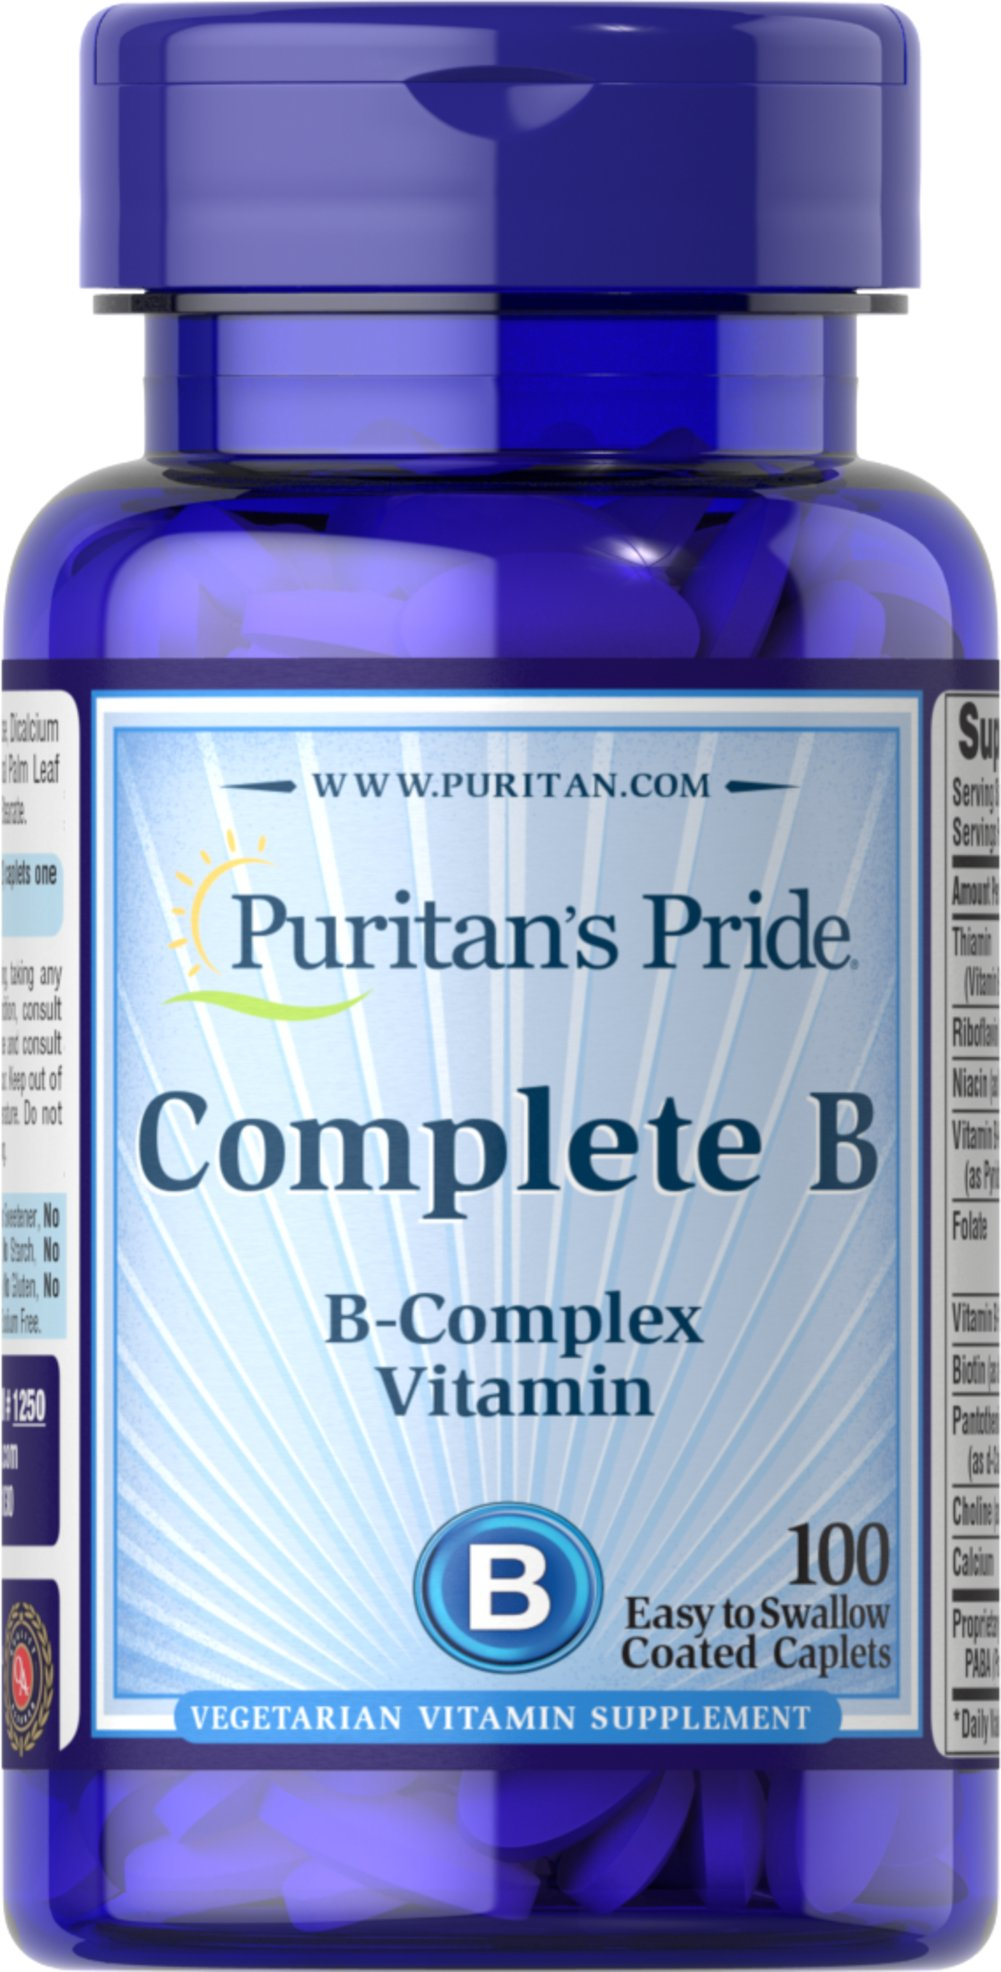 Complete B (Vitamin B Complex) <p>Complete Vitamin B Complex provides seven important B vitamins in just two caplets without sugar, starch, artificial colors or flavors. You get the entire B family in this sodium-free tablet the best B vitamin nutrition you can buy! Complete B can give you the peace of mind you deserve.</p> 100 Caplets  $11.99